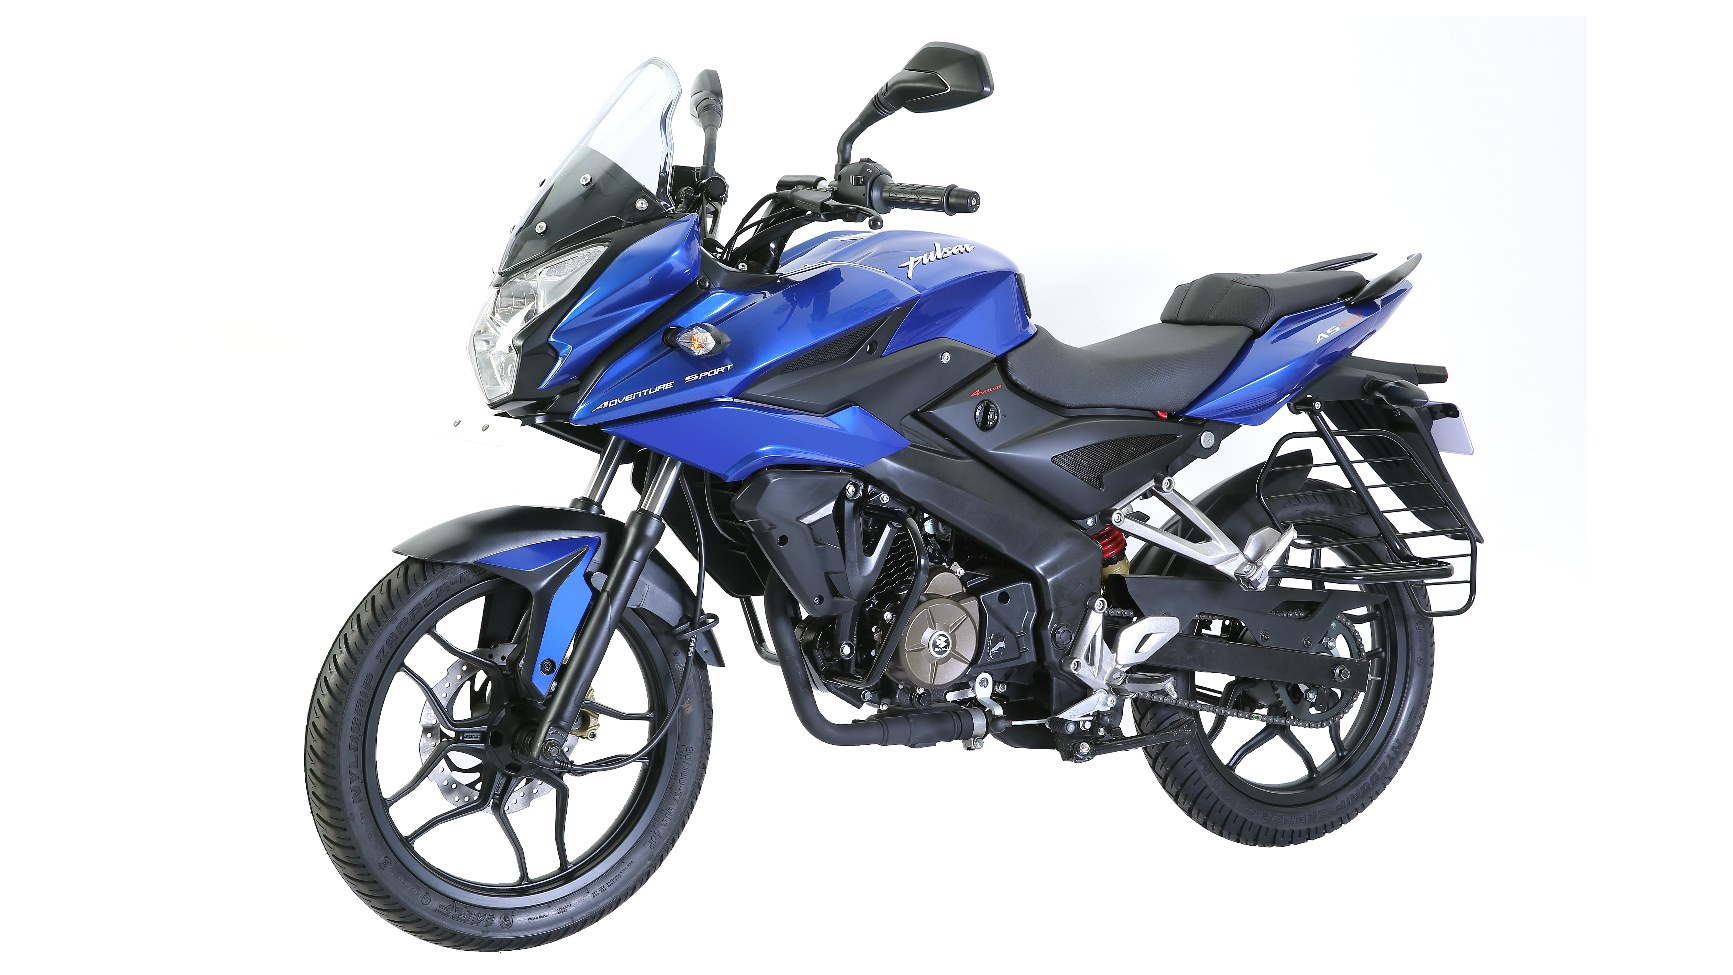 Pulsar AS 150 blue colour option